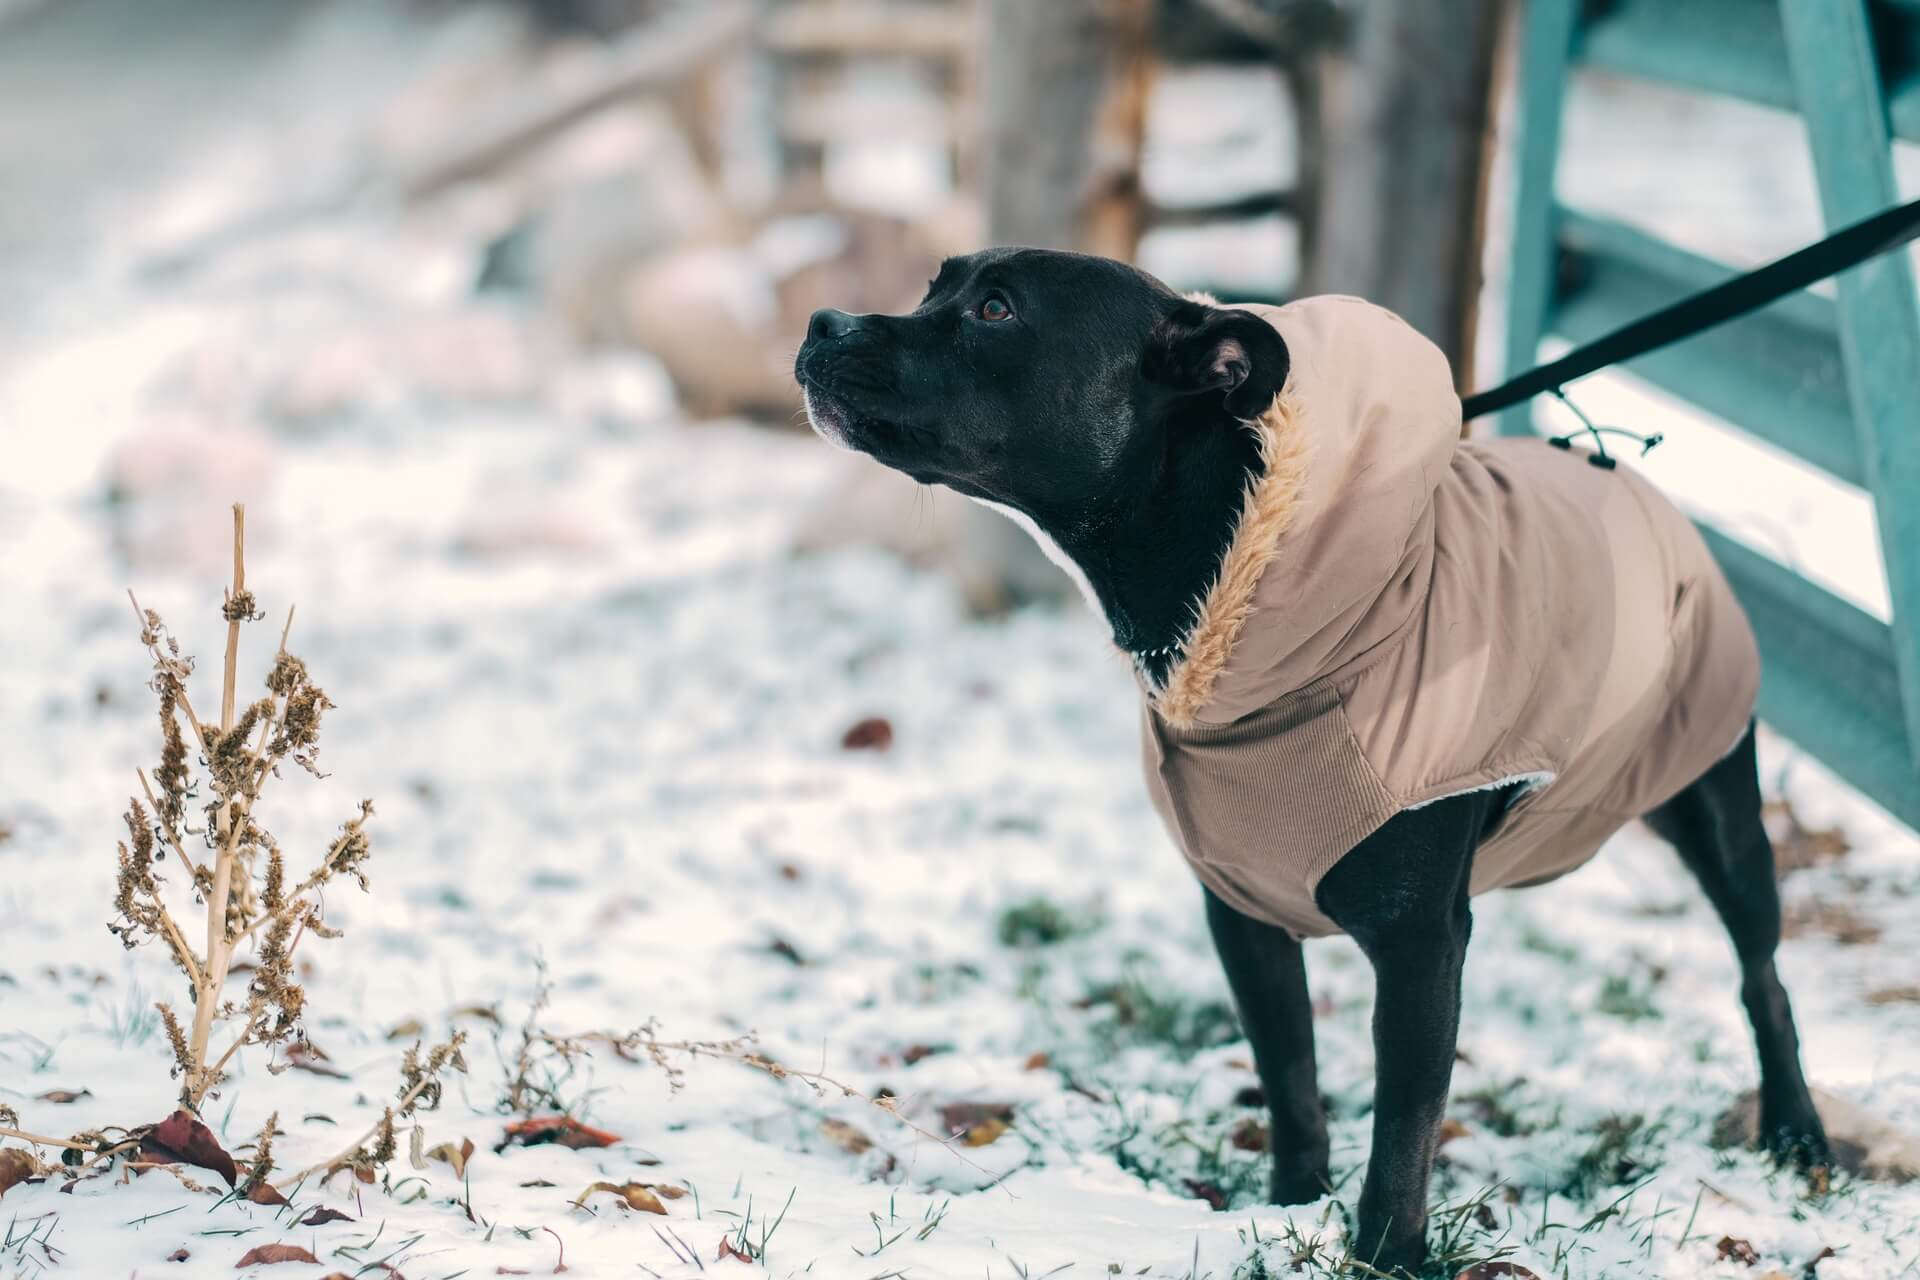 A black medium sized dog wearing a brown jacket and leash is standing looking off to the side in the snow.